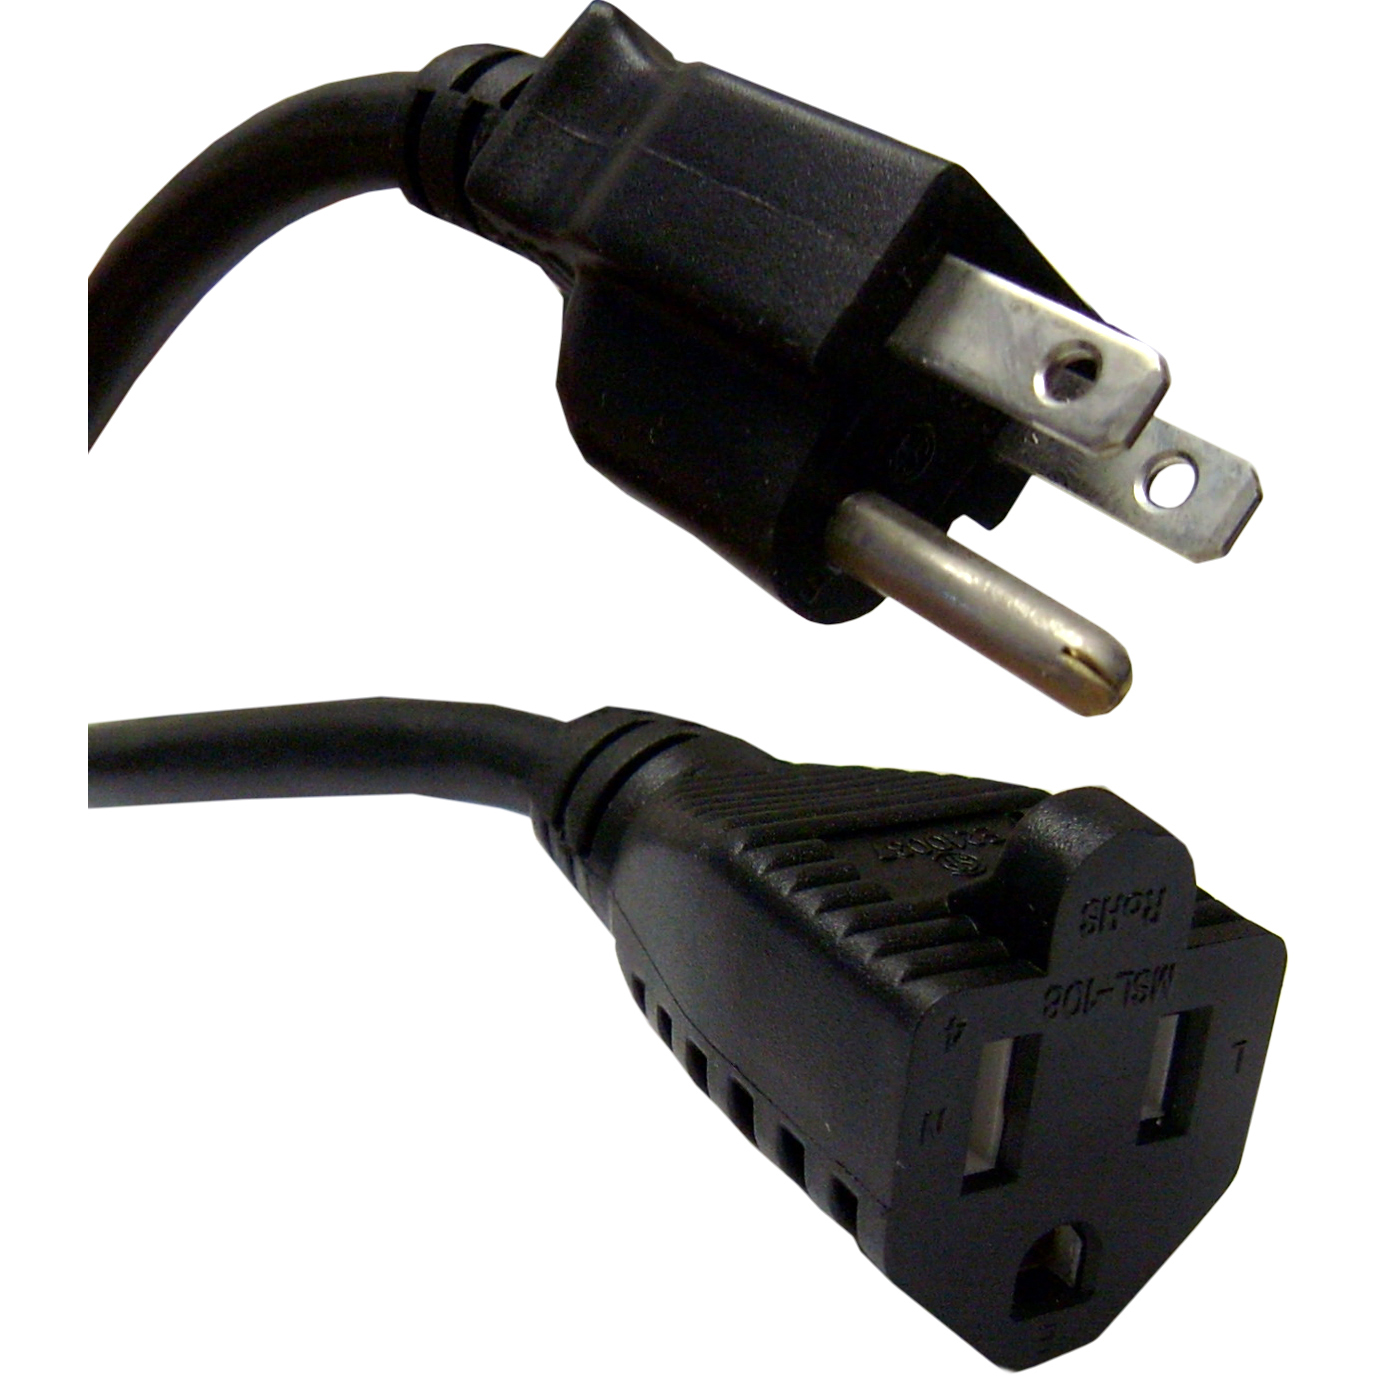 Offex Power Extension Cord, Black, NEMA 5-15P to NEMA 5-15R, 13 Amp, 16 AWG, 25 foot